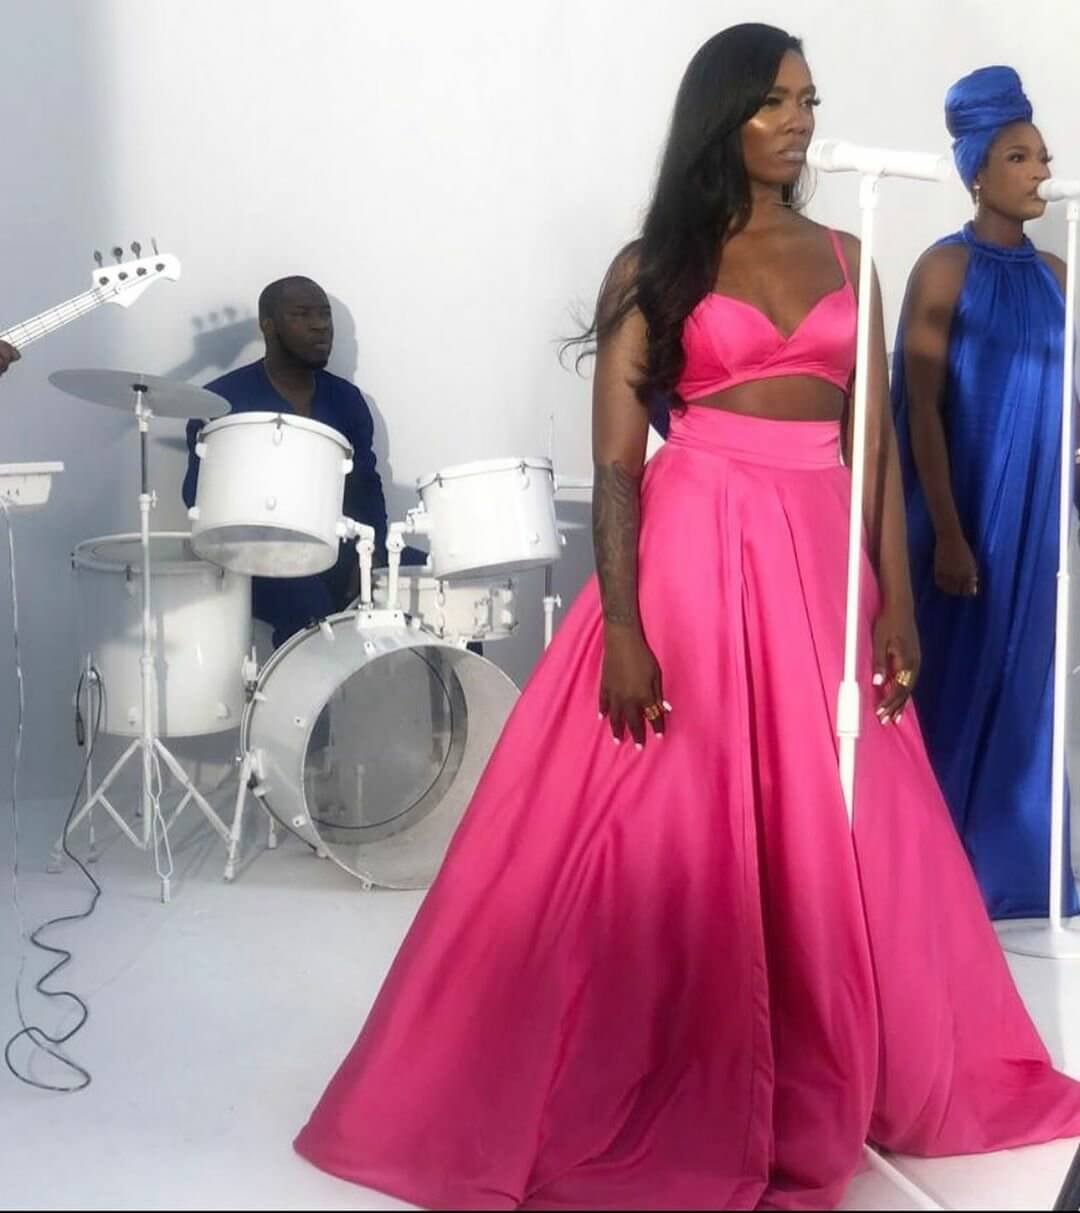 11all tiwa savages must see style moments from the 22celia22 album6397878687638744216